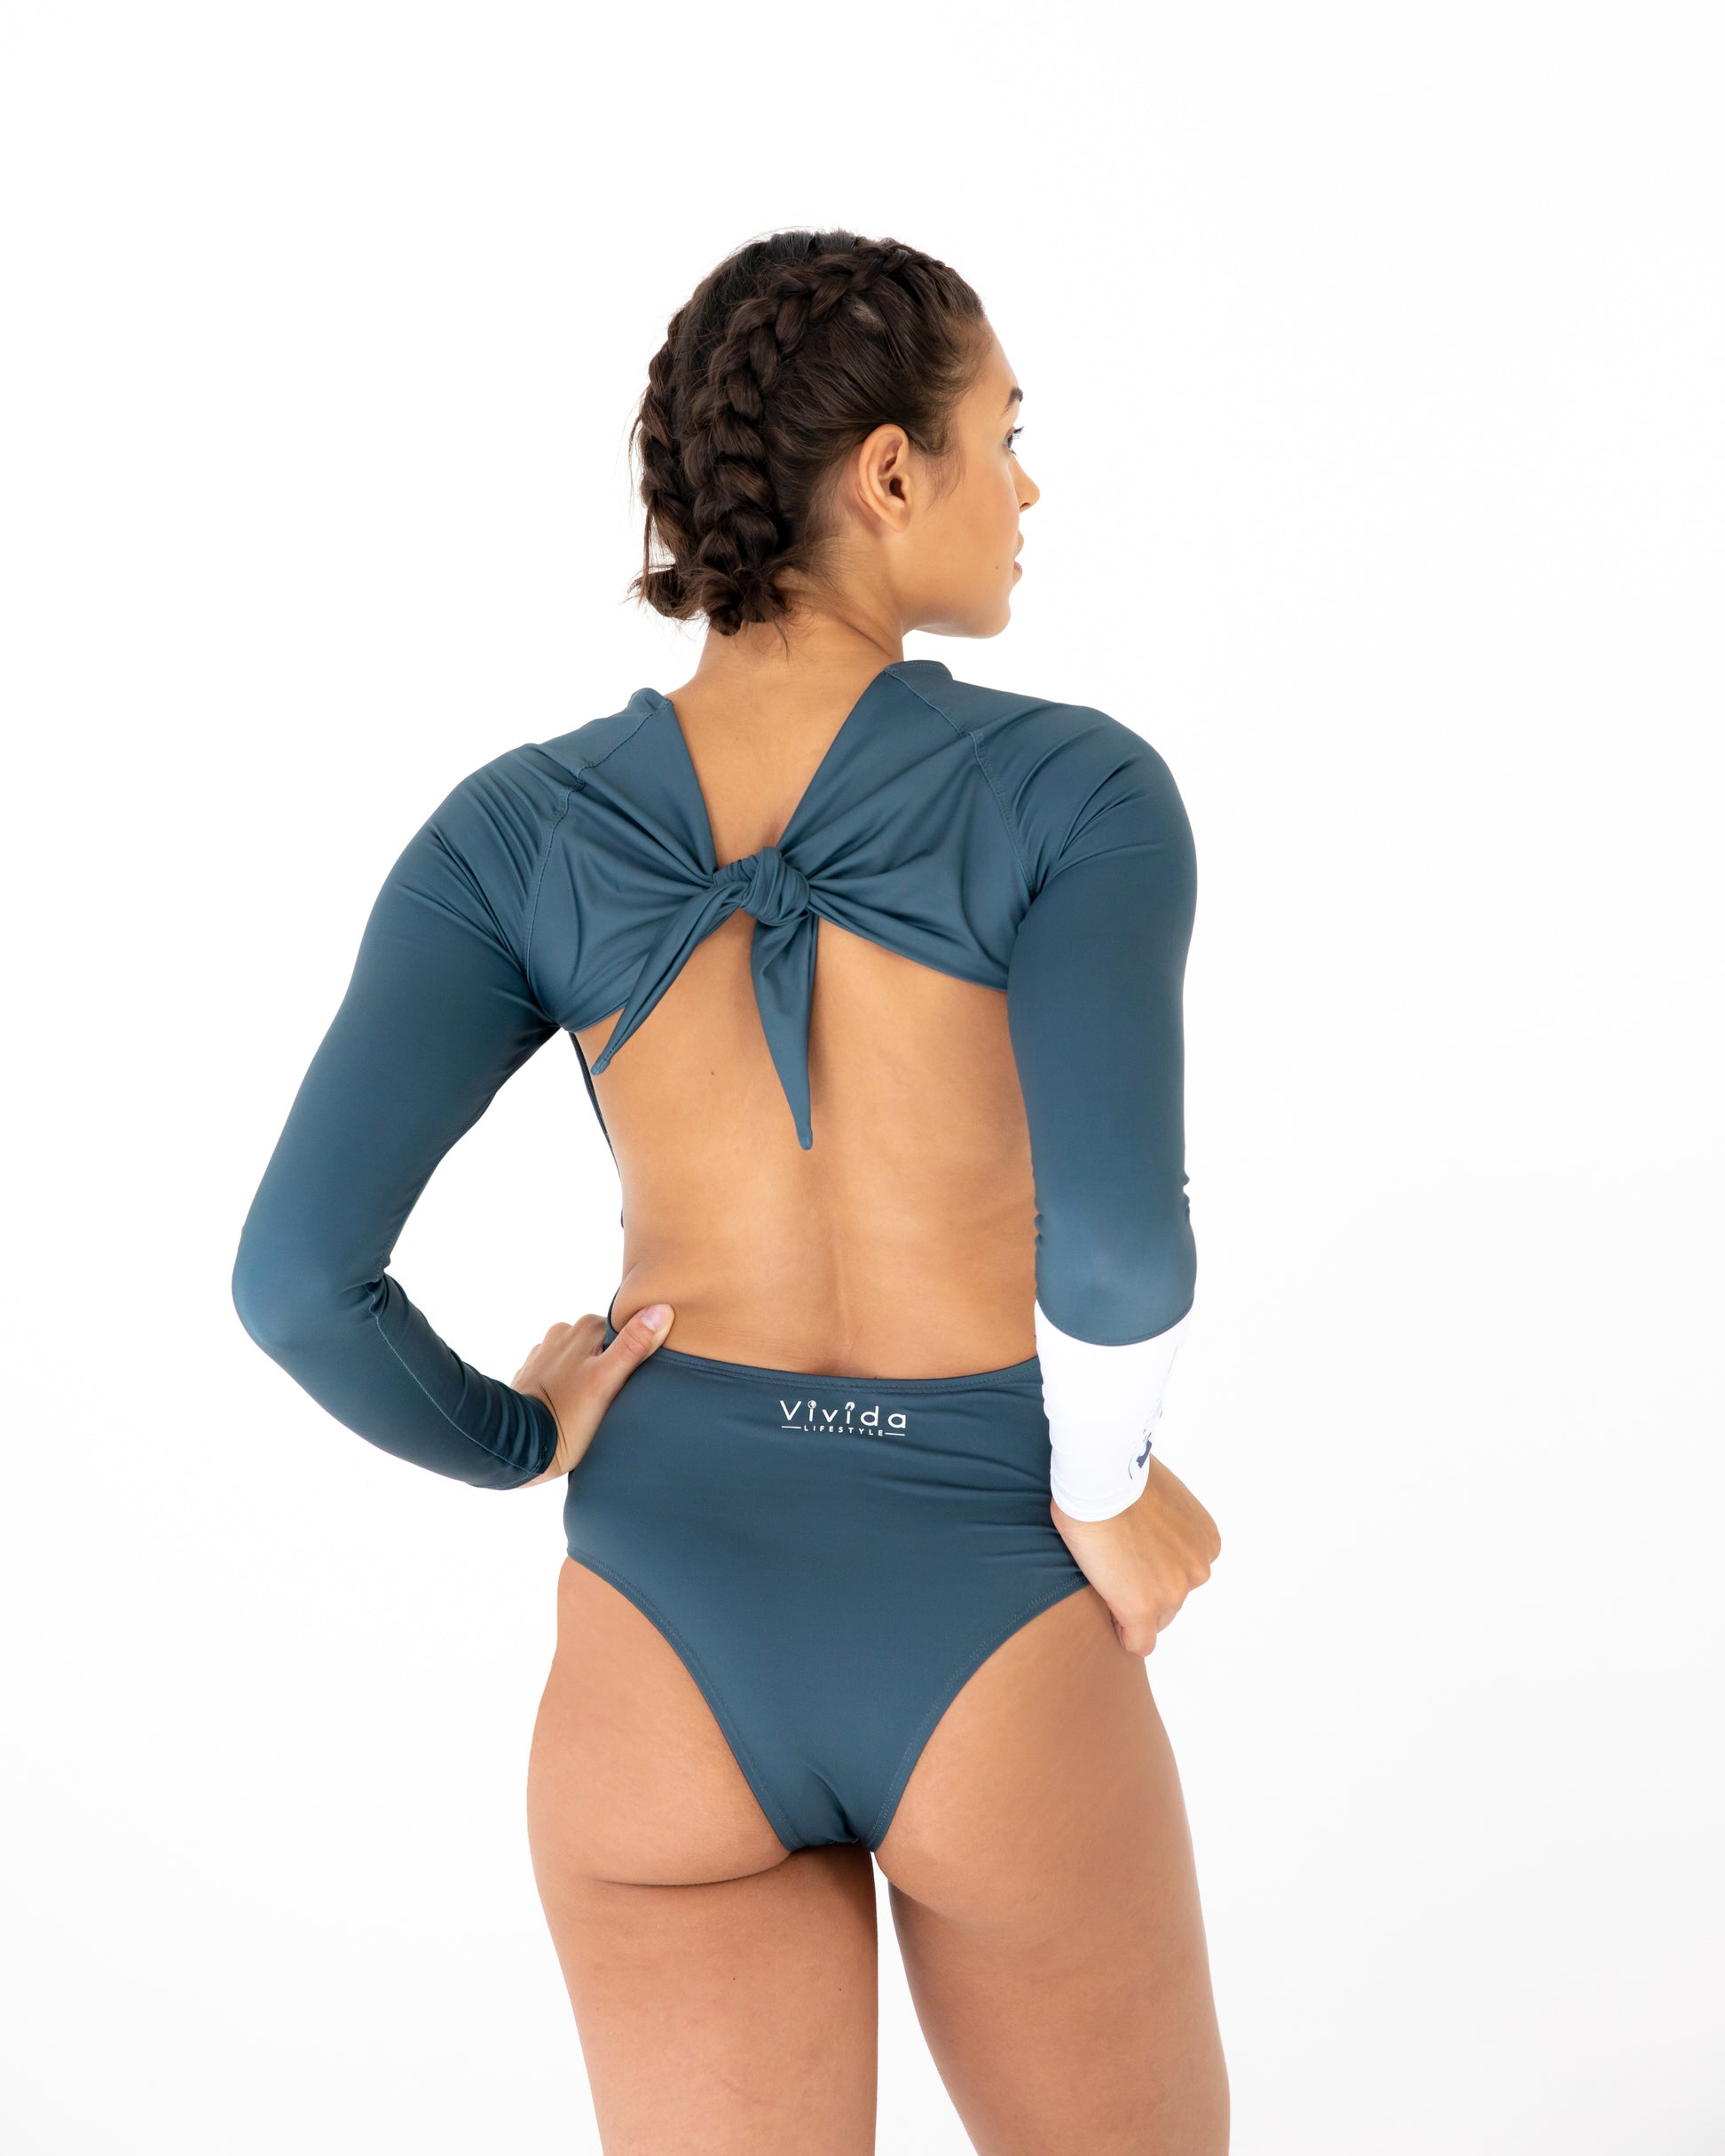 Vivida Lifestyle Water Warrior One Piece Surf Suit Stone Eco Seafoam